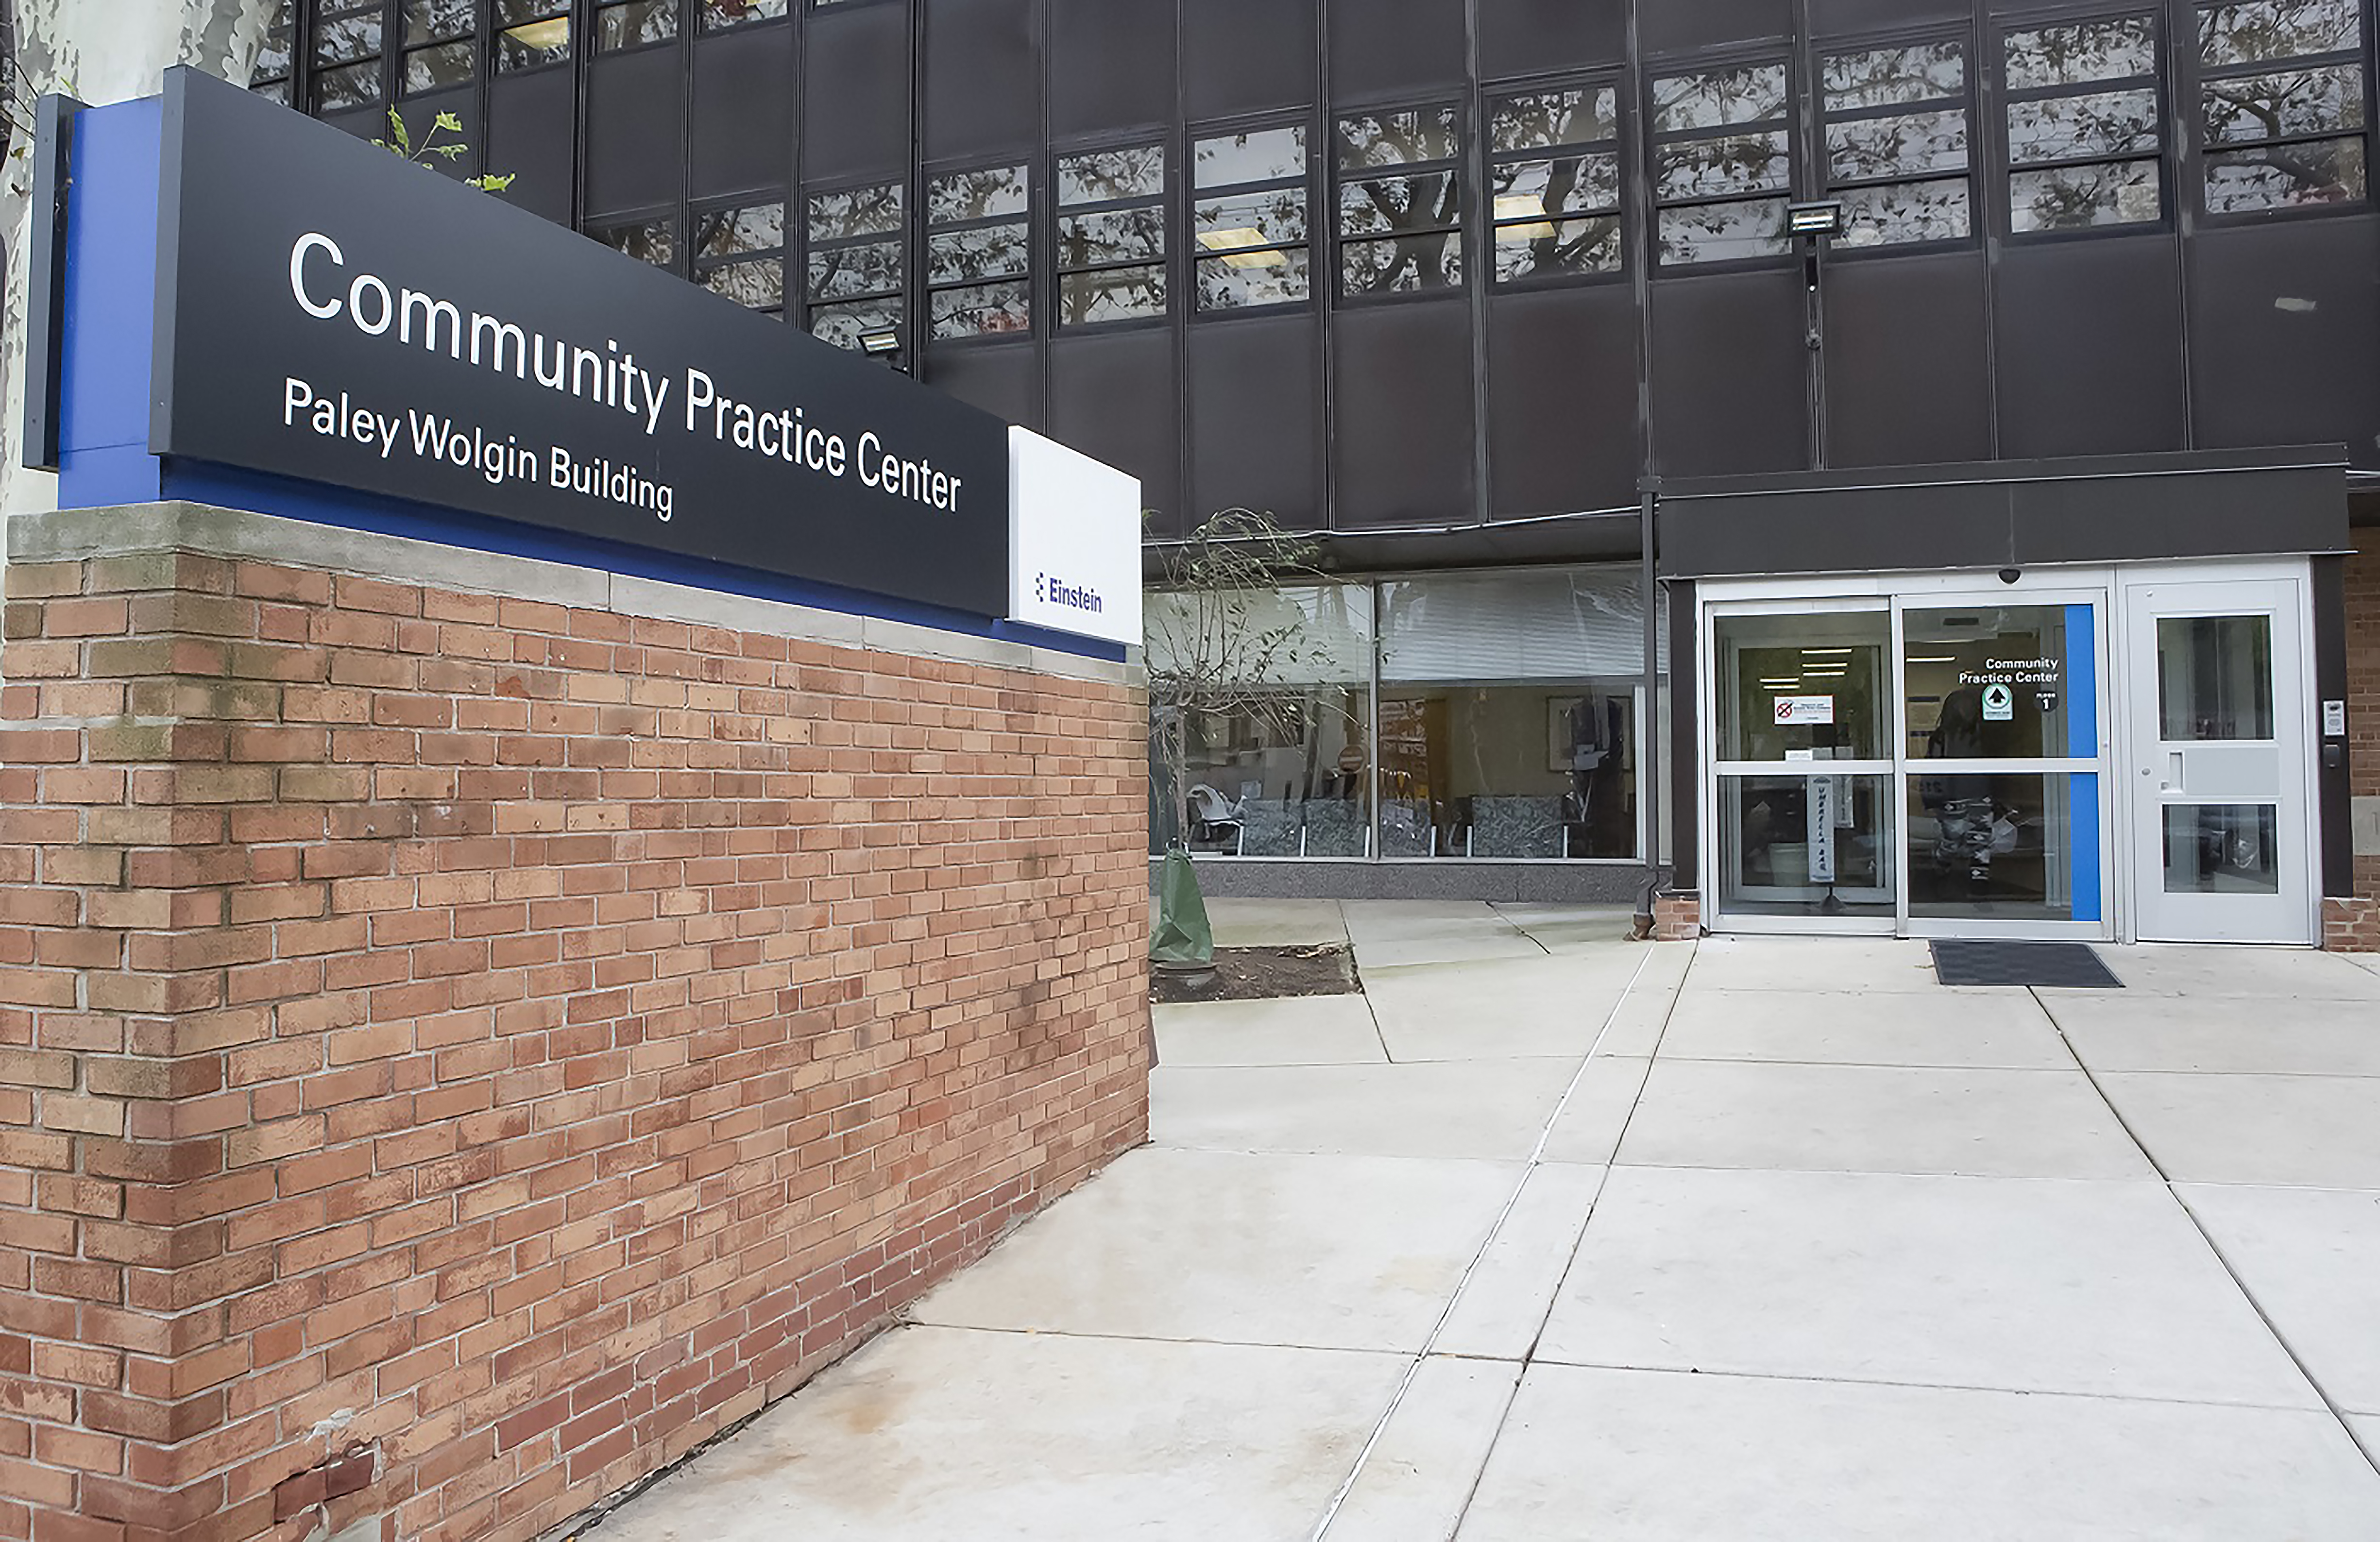 image of Community Practice Center